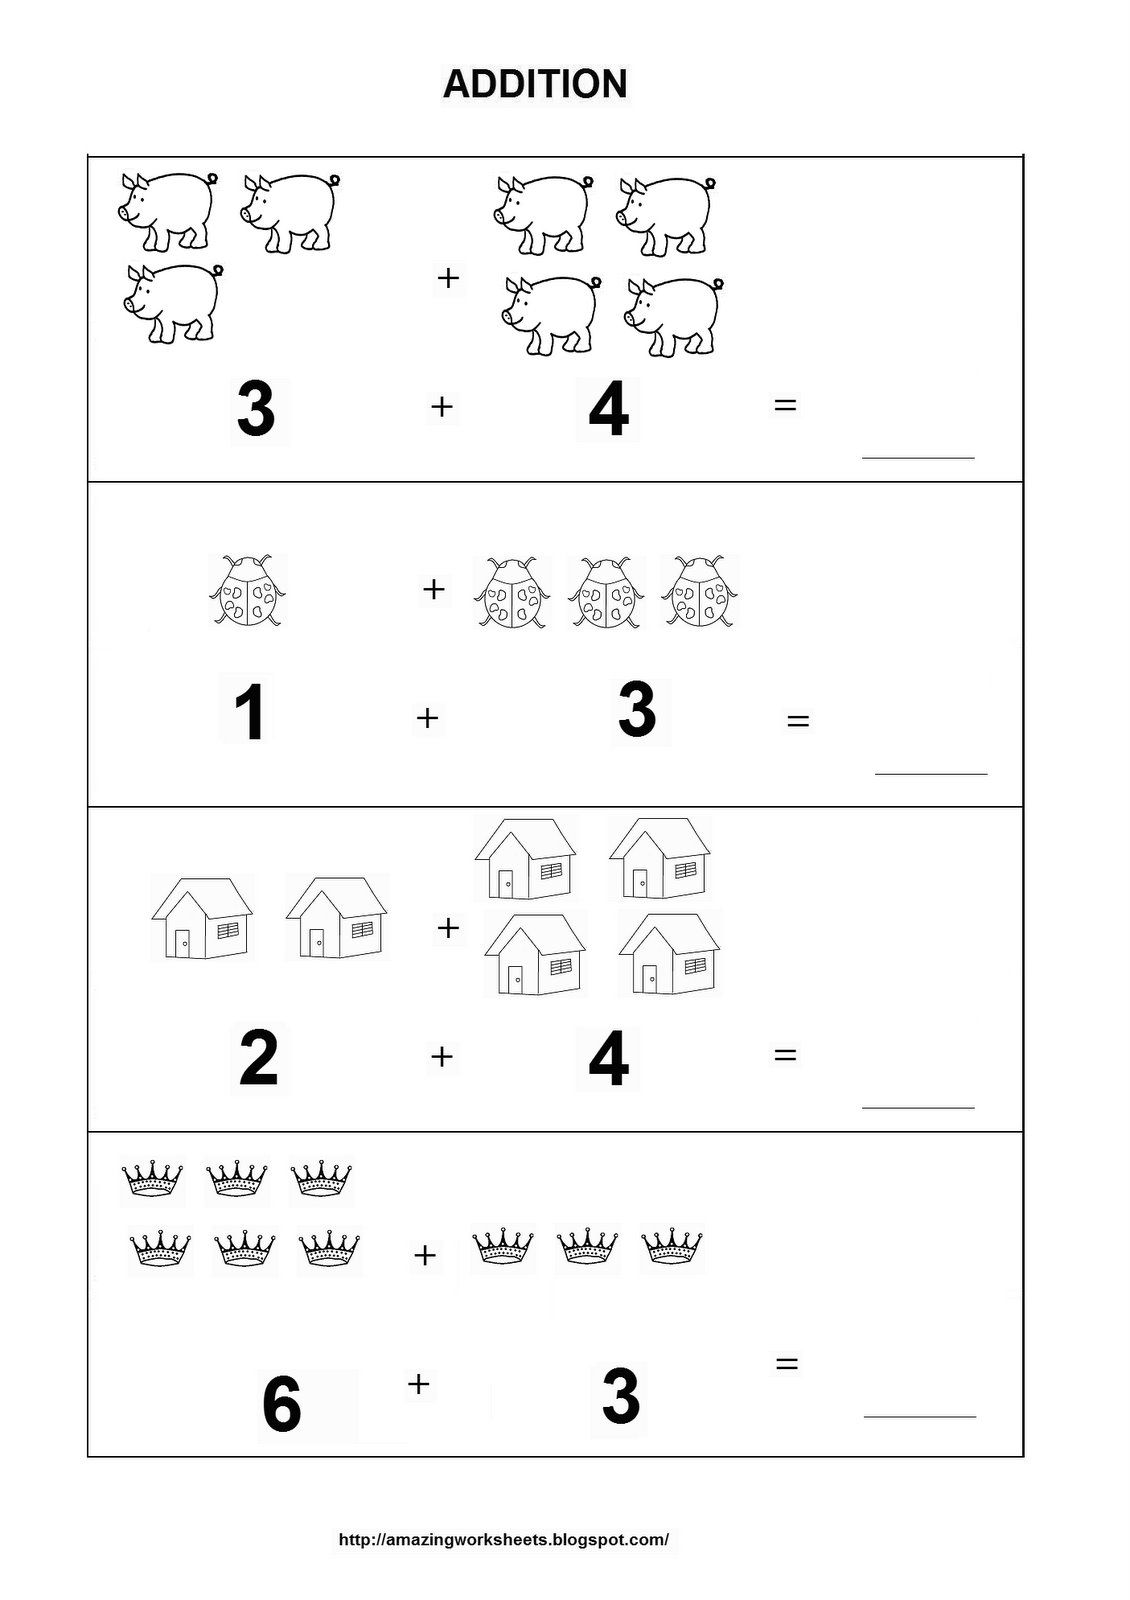 math worksheet : addition worksheet  homeschooling addition  pinterest  : Addition With Pictures Worksheets